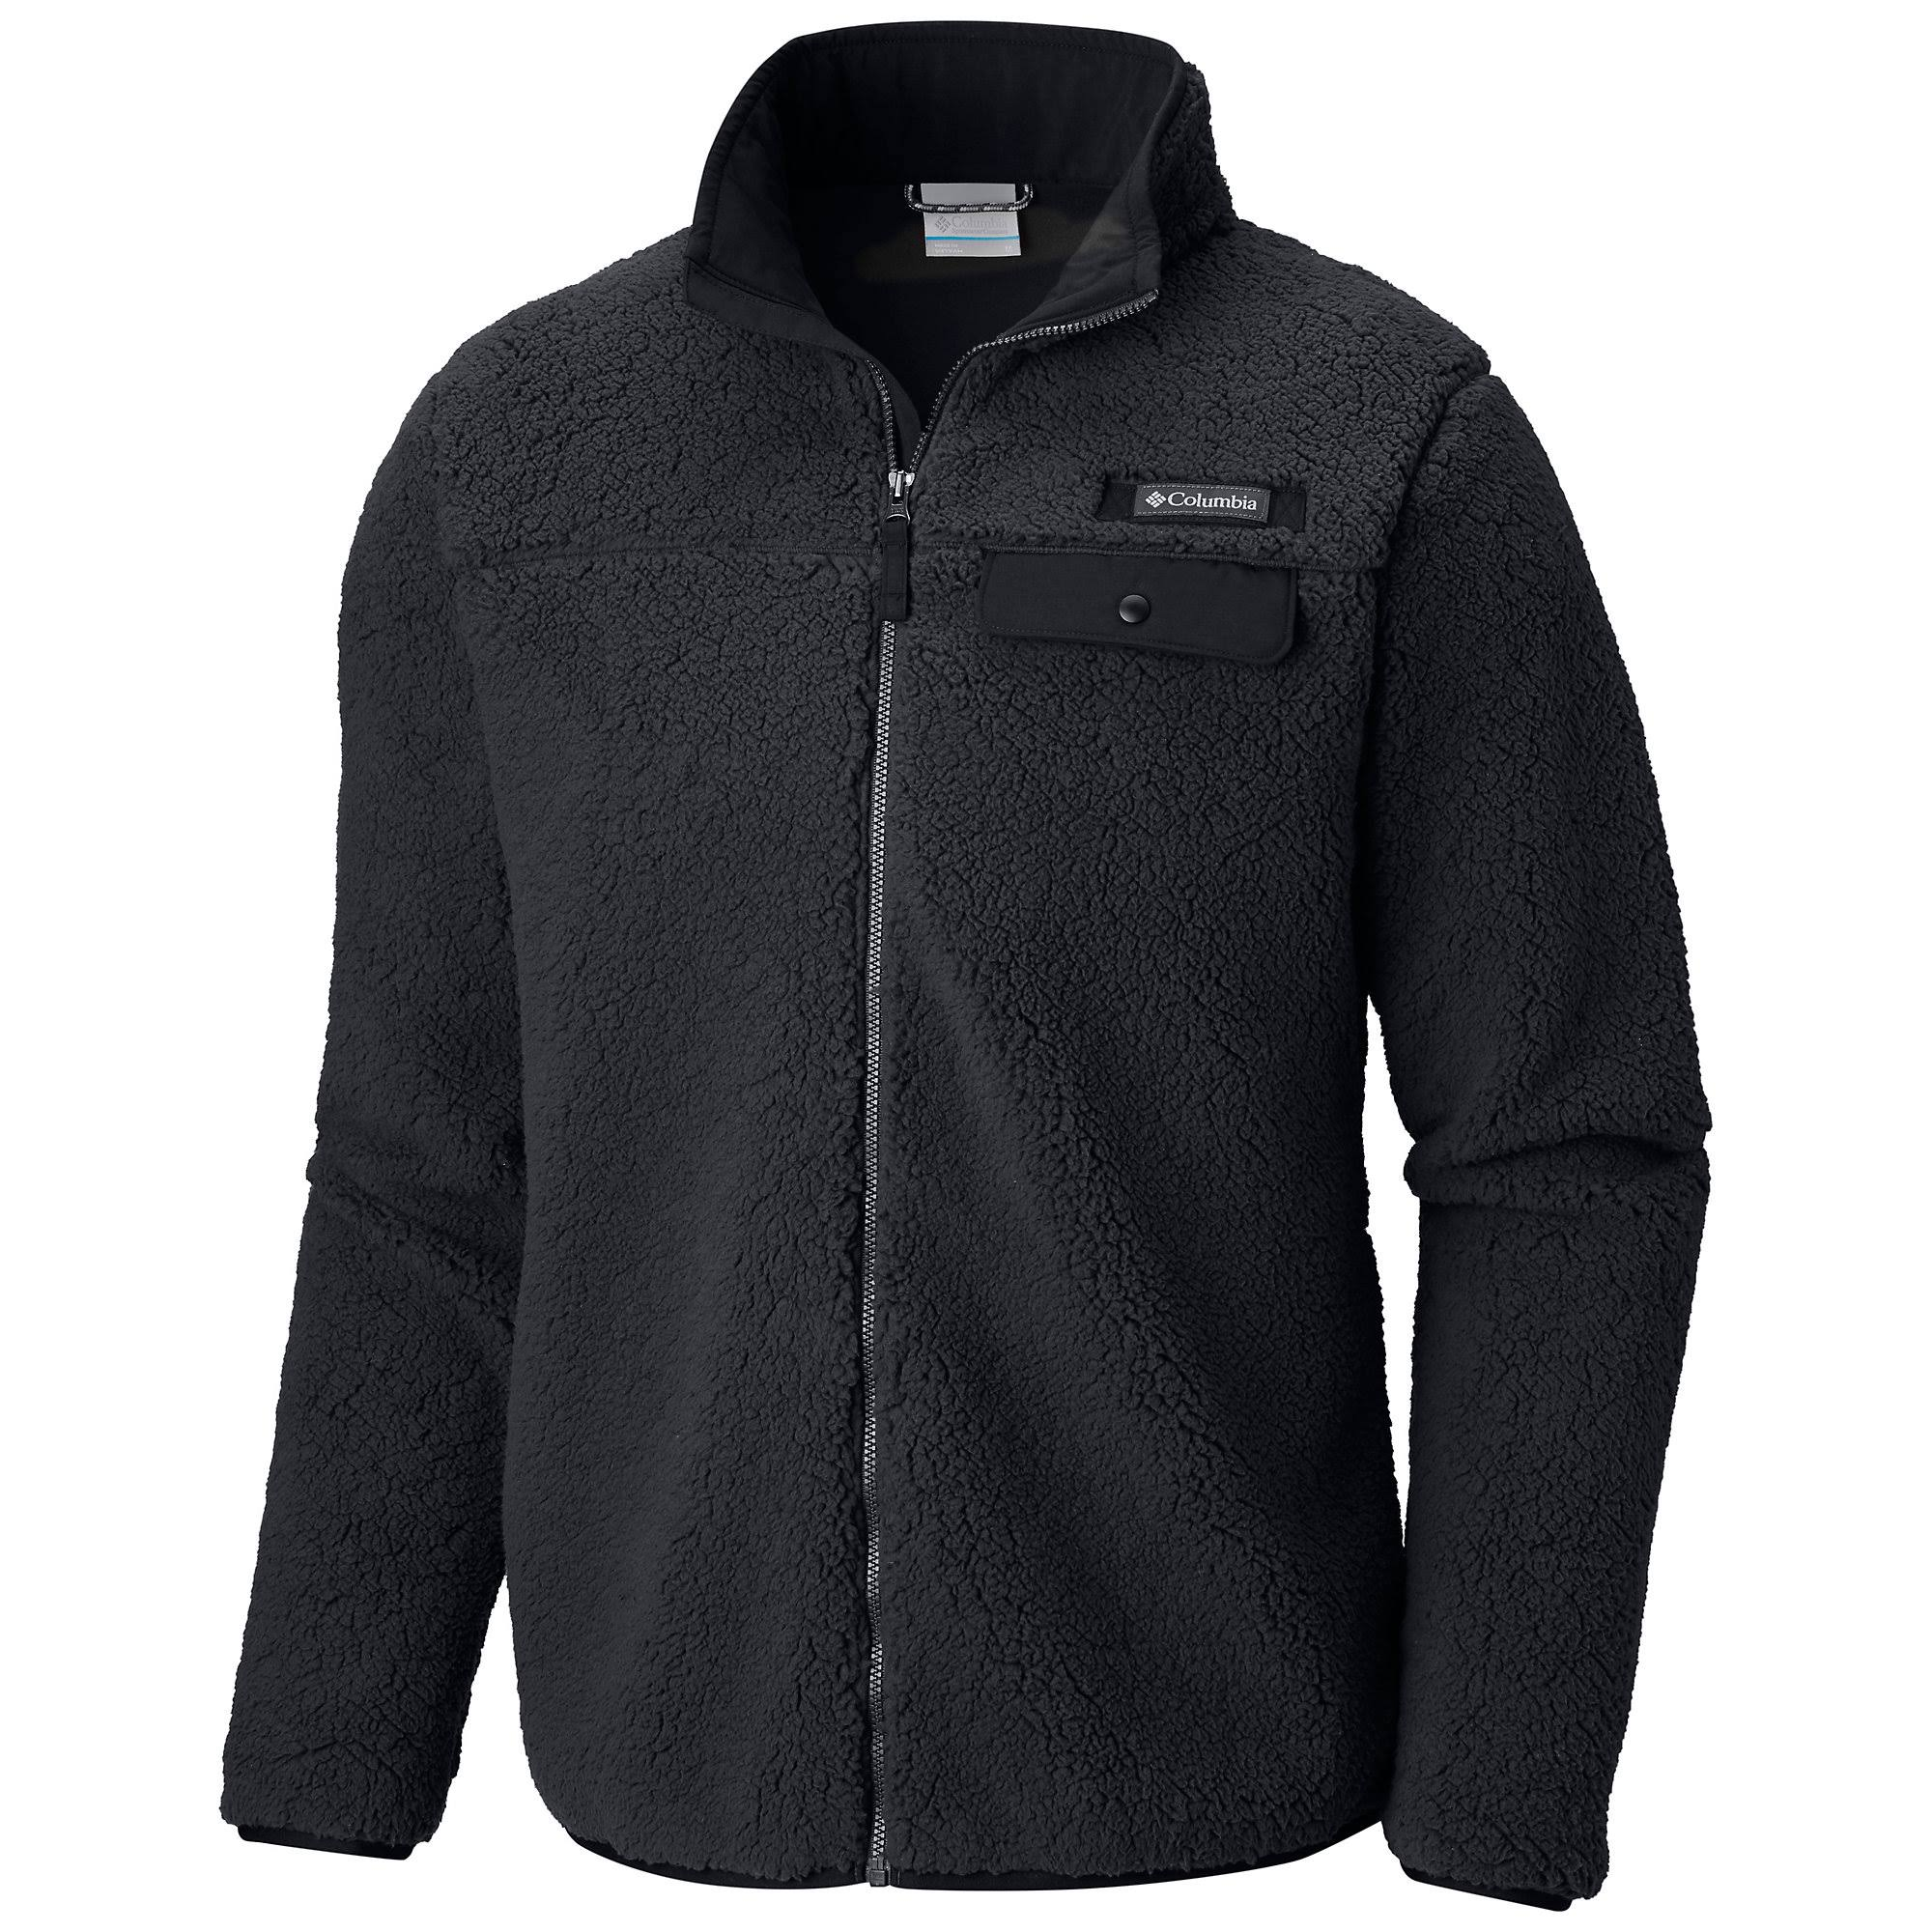 Columbia Men's Mountain Side Heavyweight Full-Zip Fleece - Black, L